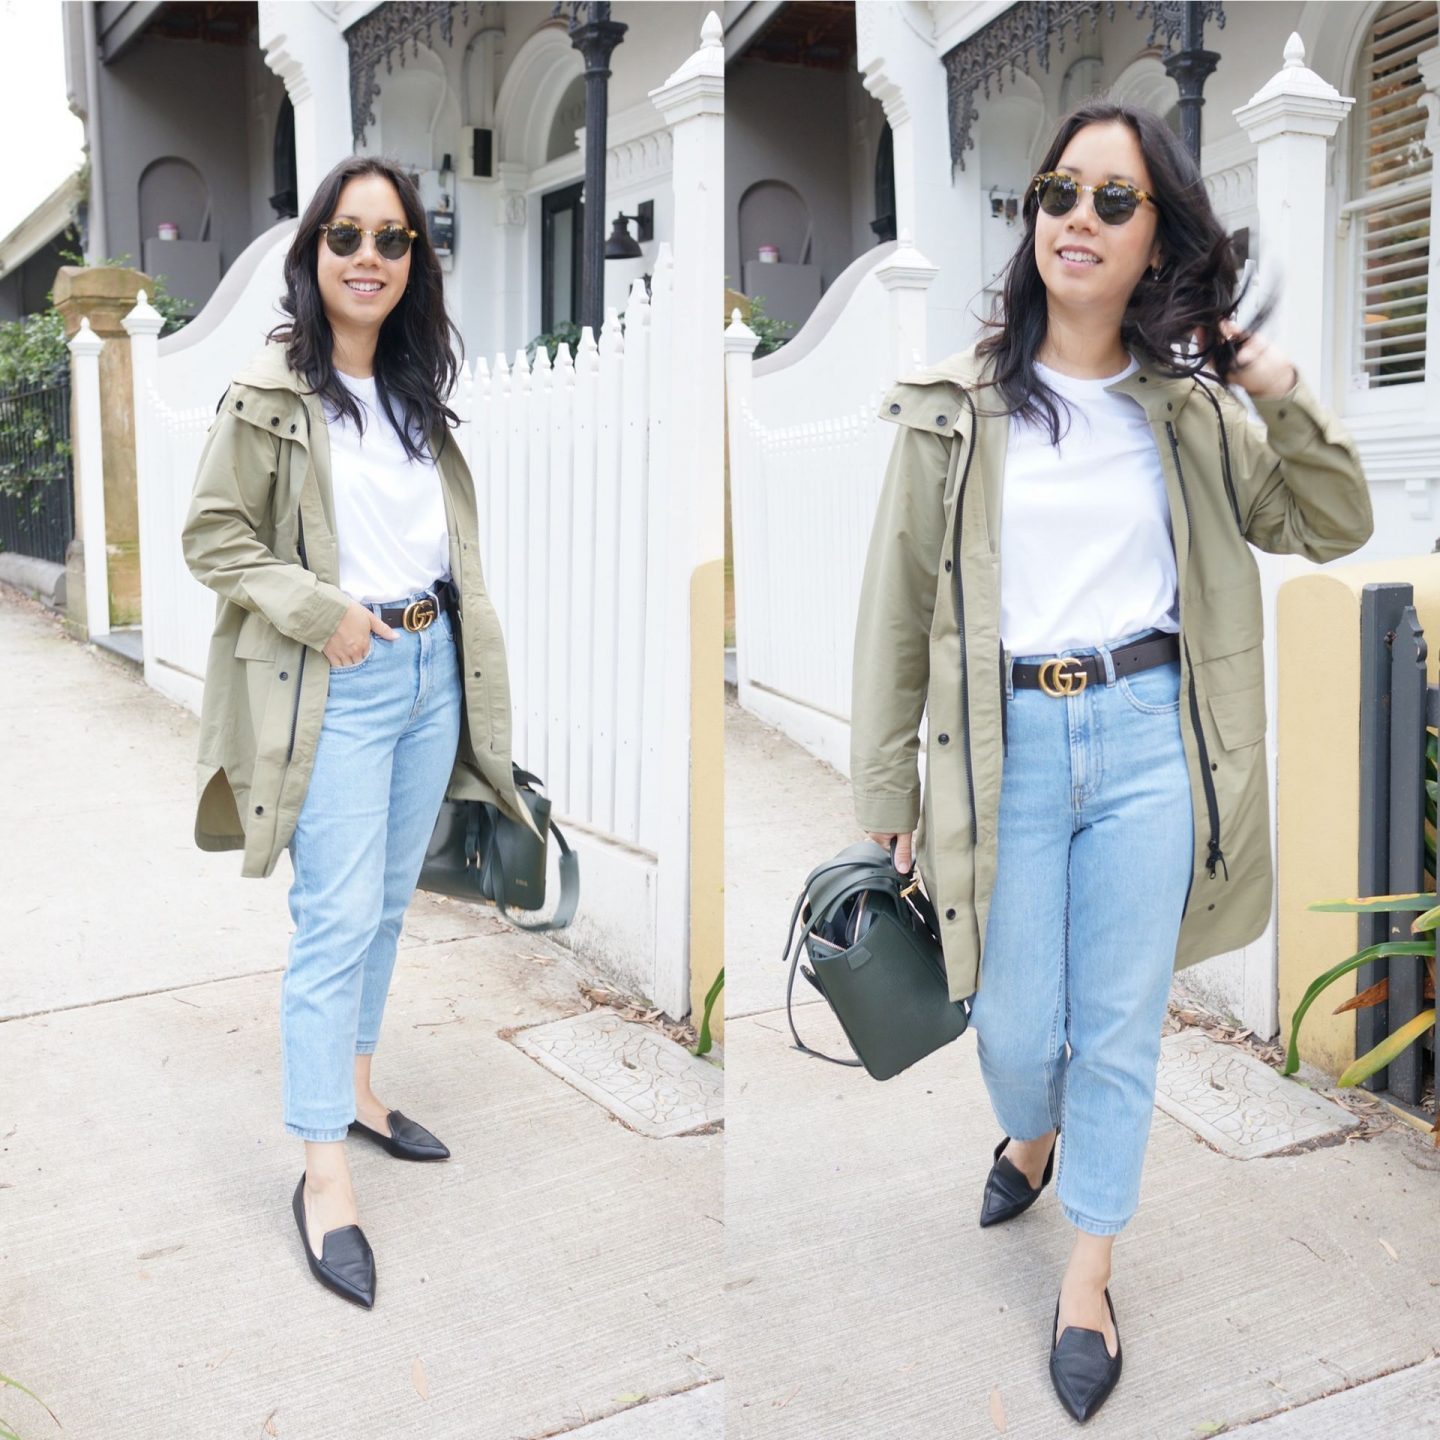 everlane anorak in blog post about transitional outerwear and jackets for spring and autumn